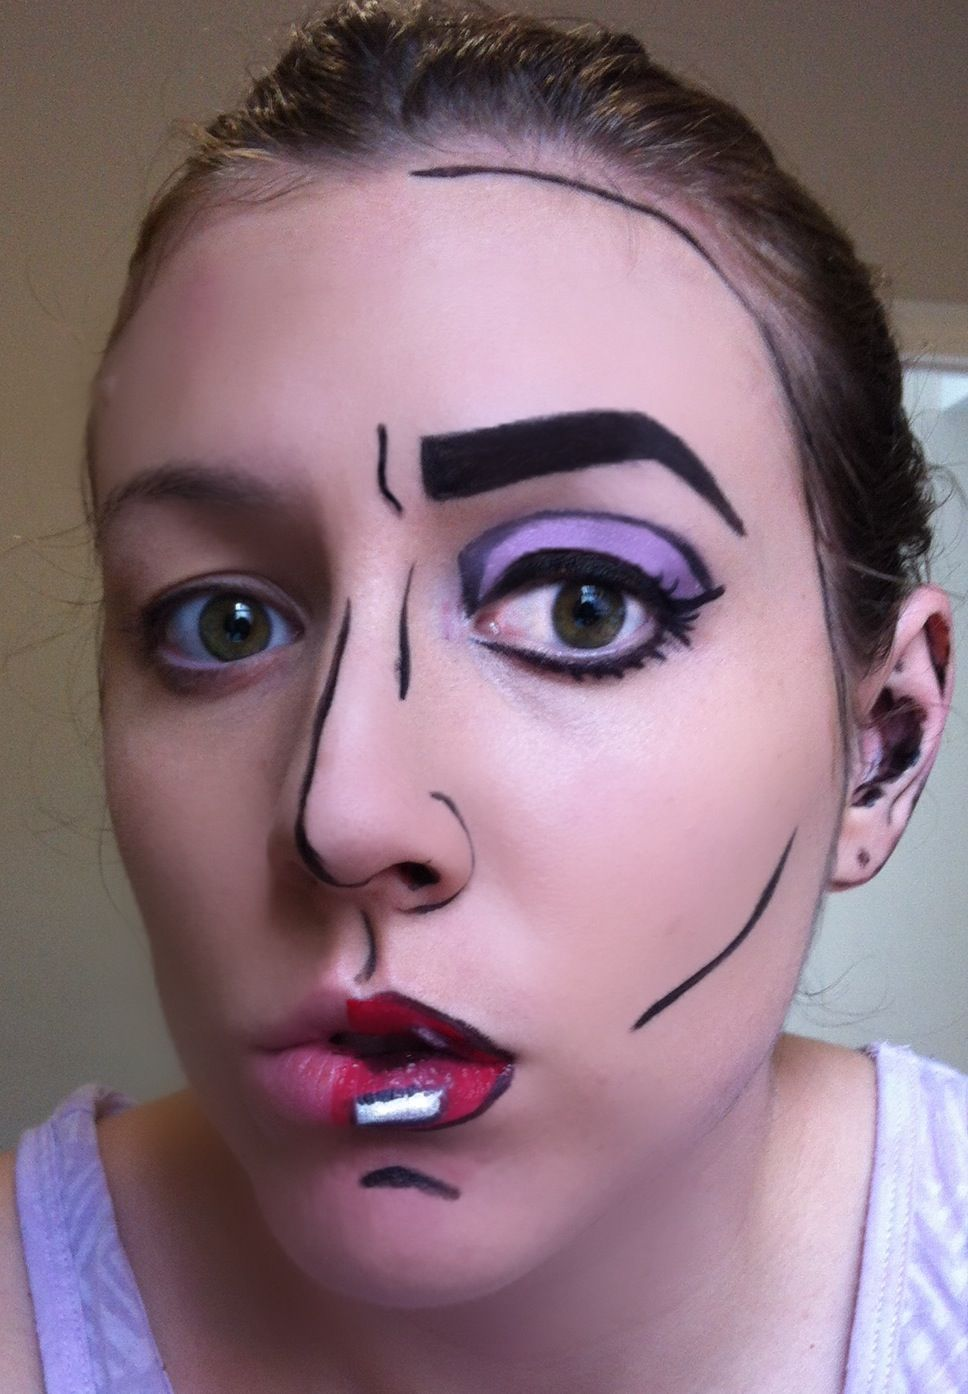 cartoon makeup | Beauty | Pinterest | Cartoon, Cartoon makeup and ...